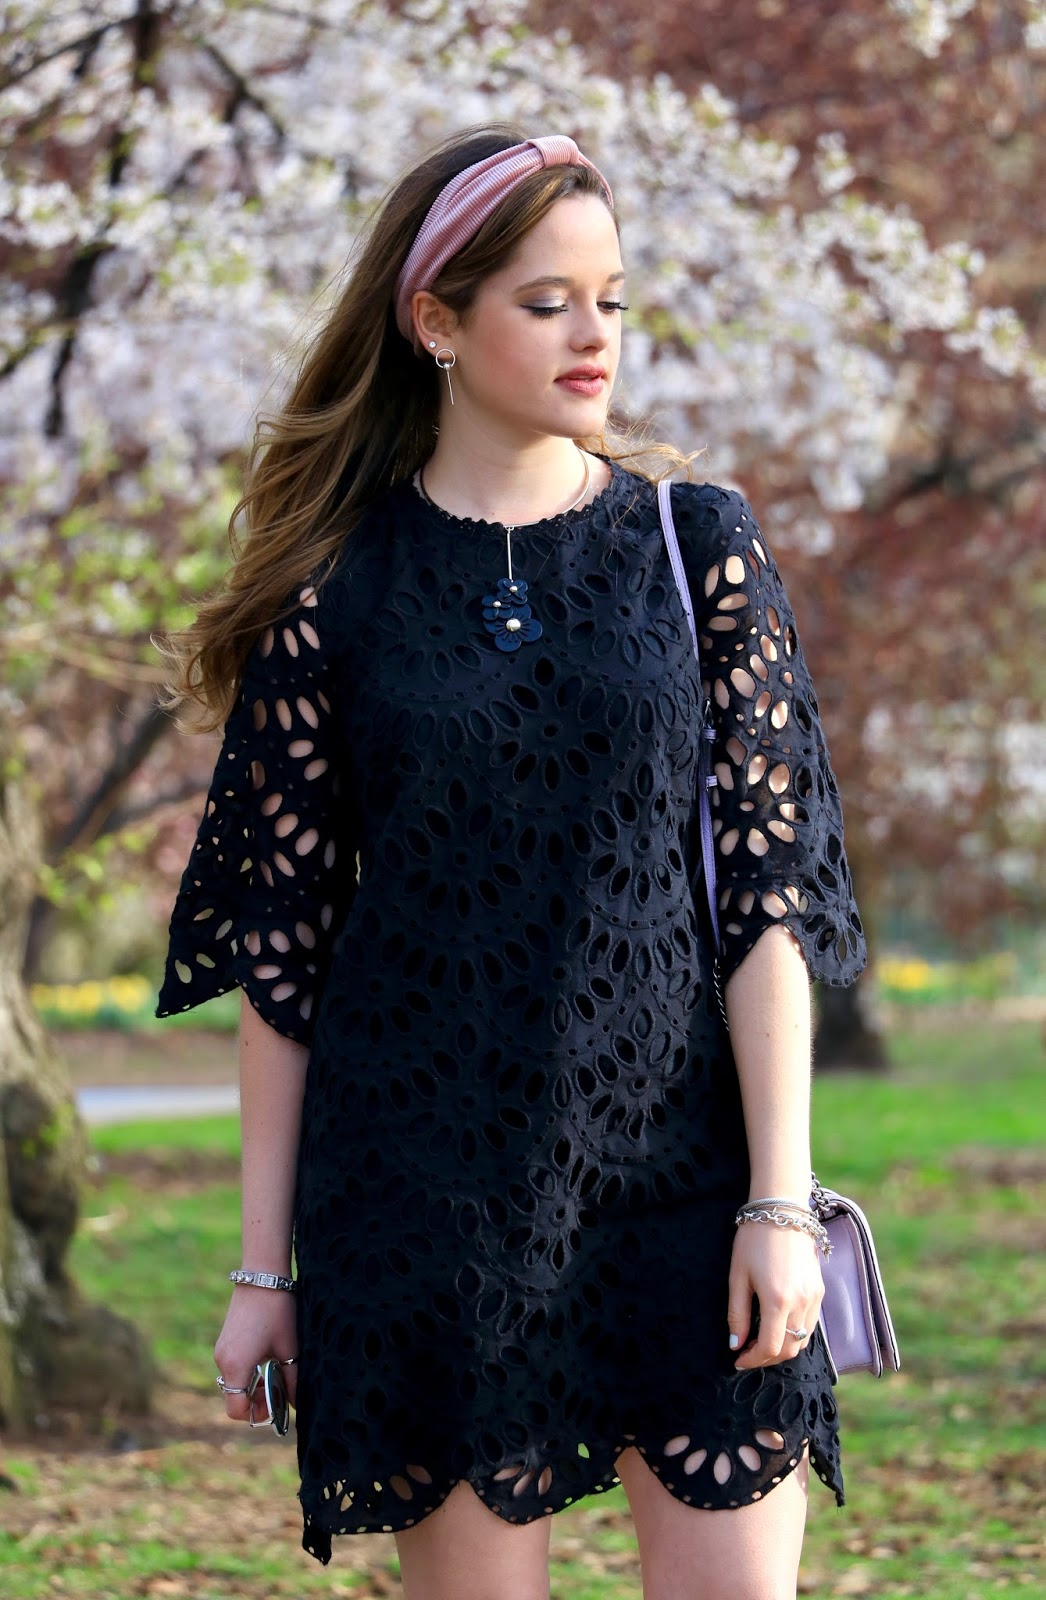 Nyc fashion blogger Kathleen Harper wearing a lace lbd